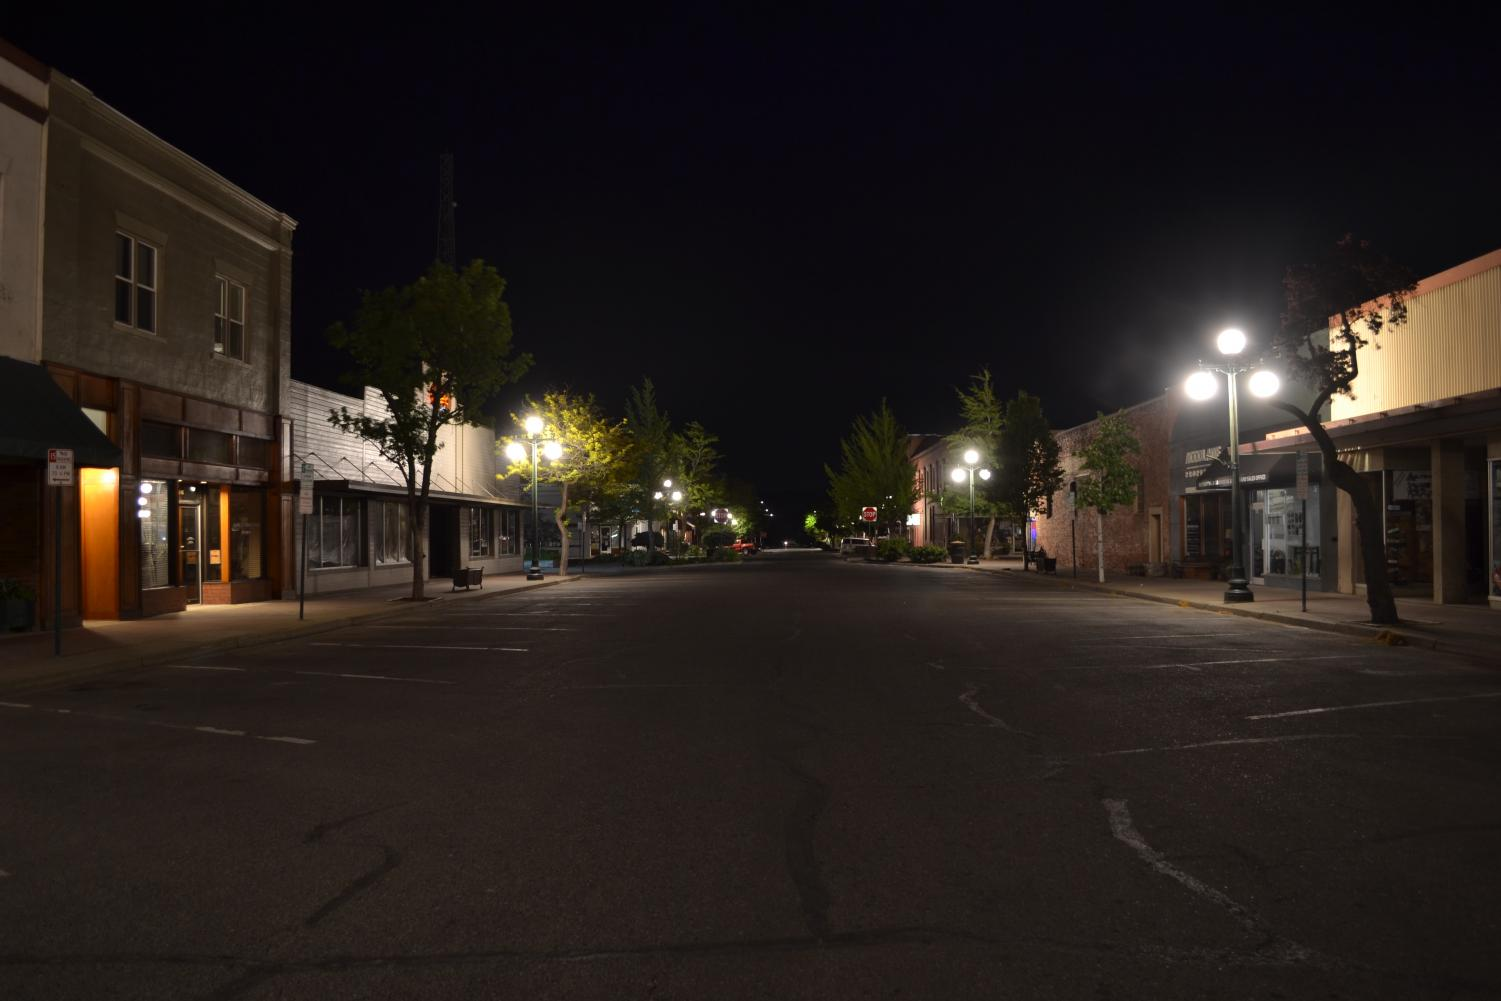 The streets of Ellensburg are empty with few vehicles passing through. Empty streets like this one show the lack of nighttime entertainment options for students who are under the age of 21.